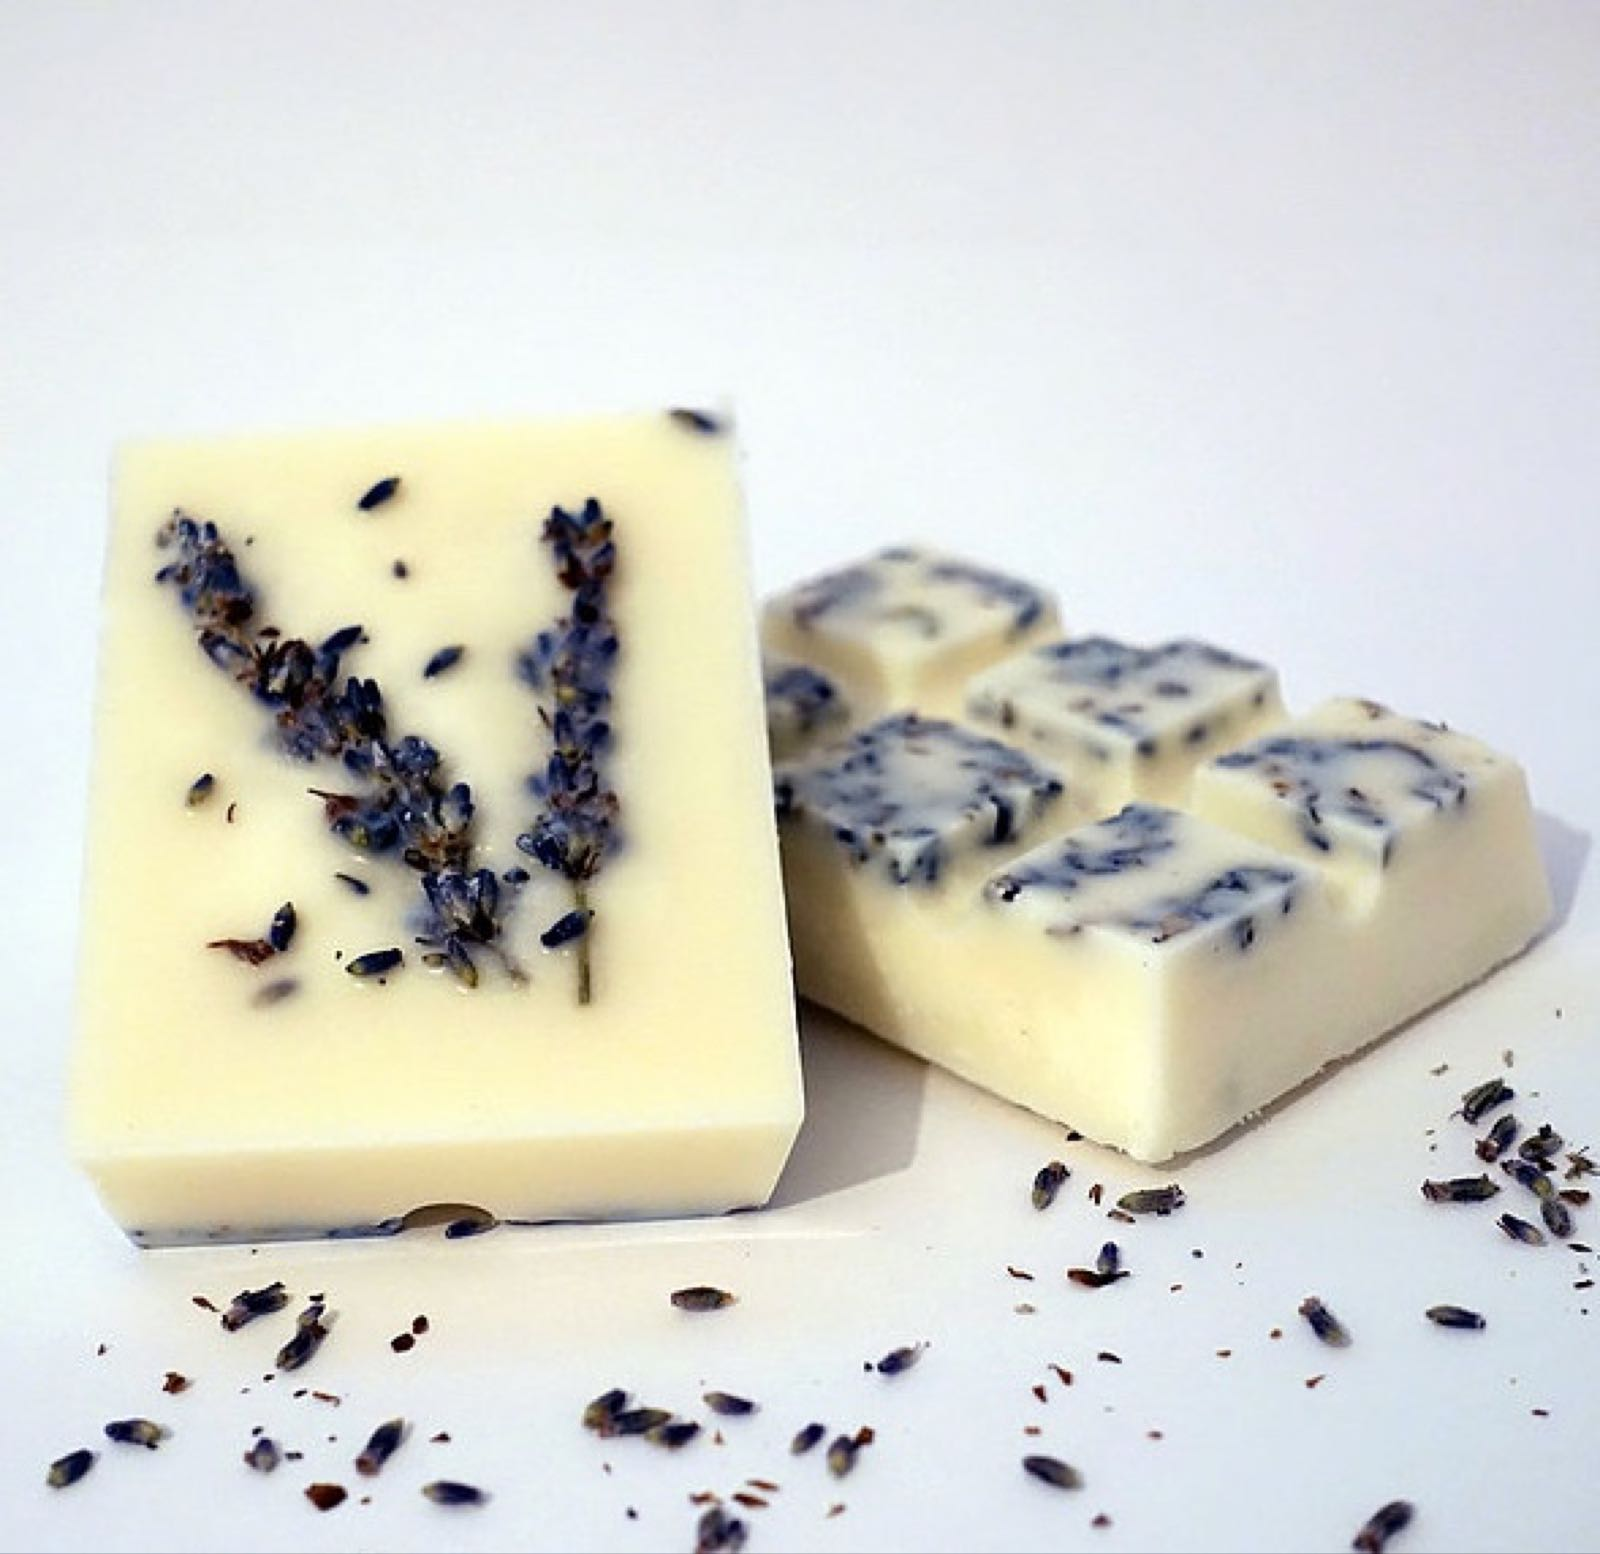 Lavender and Clary sage Wax Melts by The Candle Brand